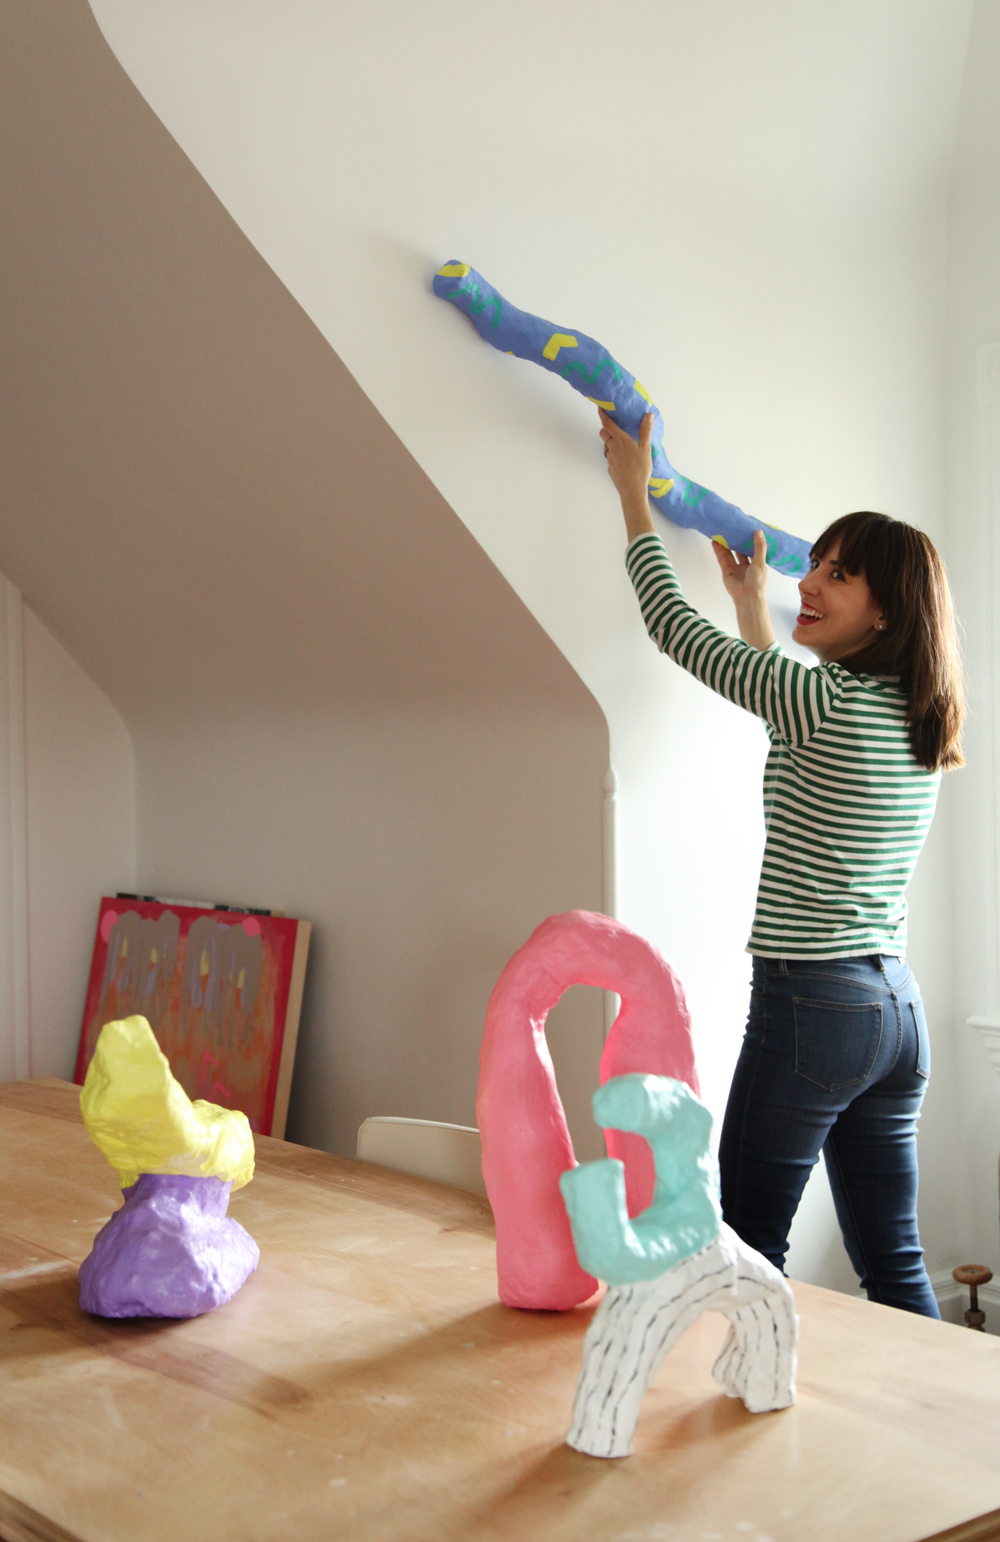 Playing with the wiggly snake, her first sculpture. We're pretty much obsessed with the bubblegum colors and oddly-attractive shapes in her collection.